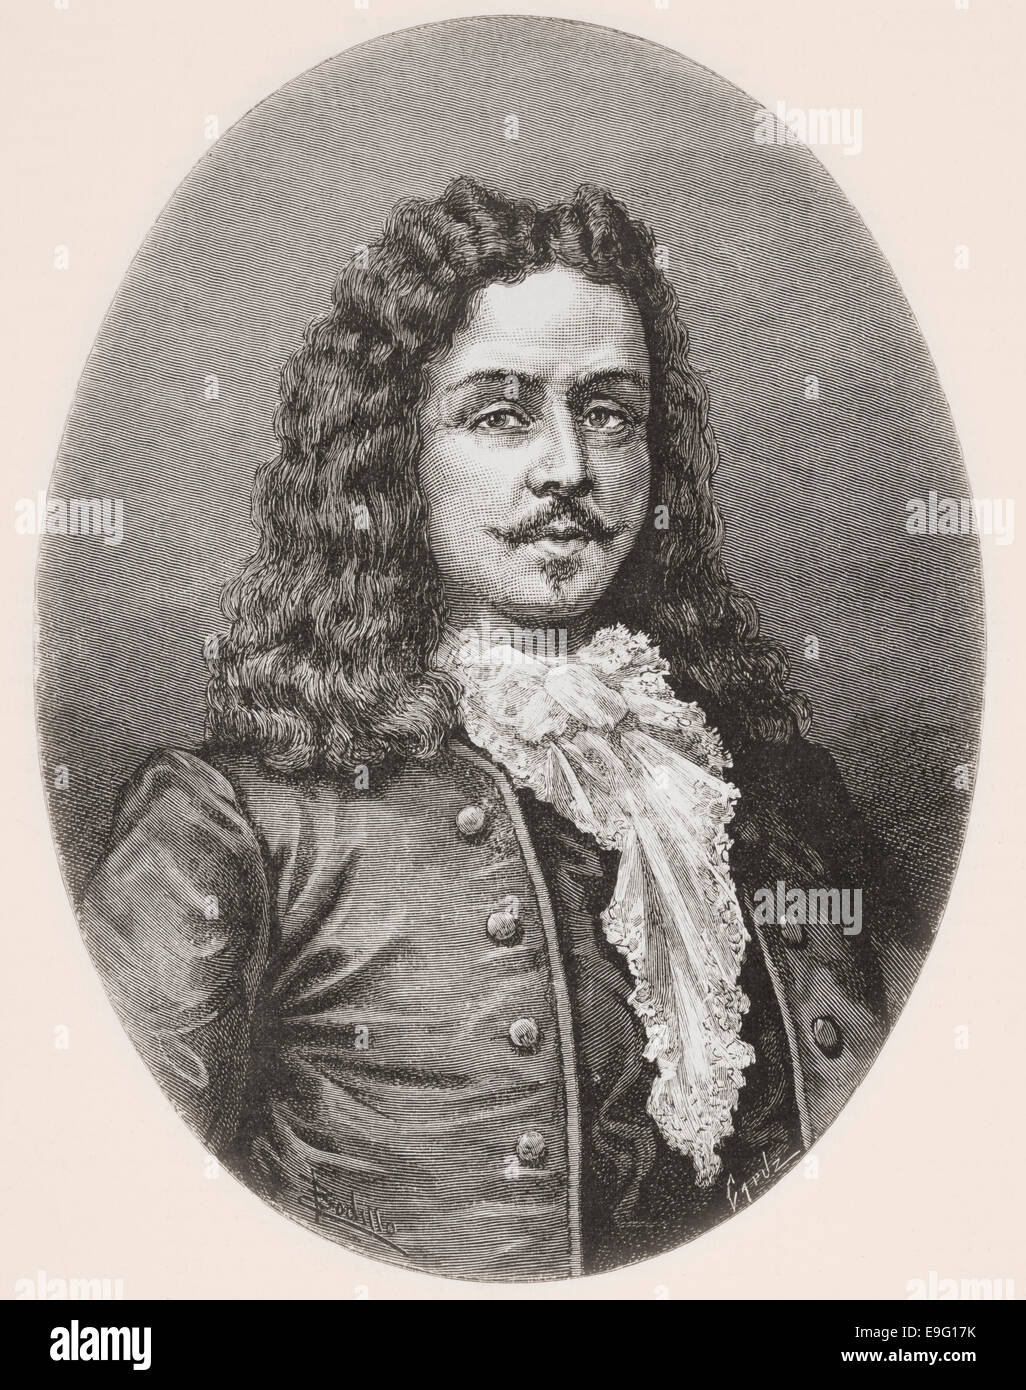 Administrator - Bruno Mauricio De Zabala 1682 1736 Spanish Soldier And Colonial Administrator Founder Of Montevideo Uruguay